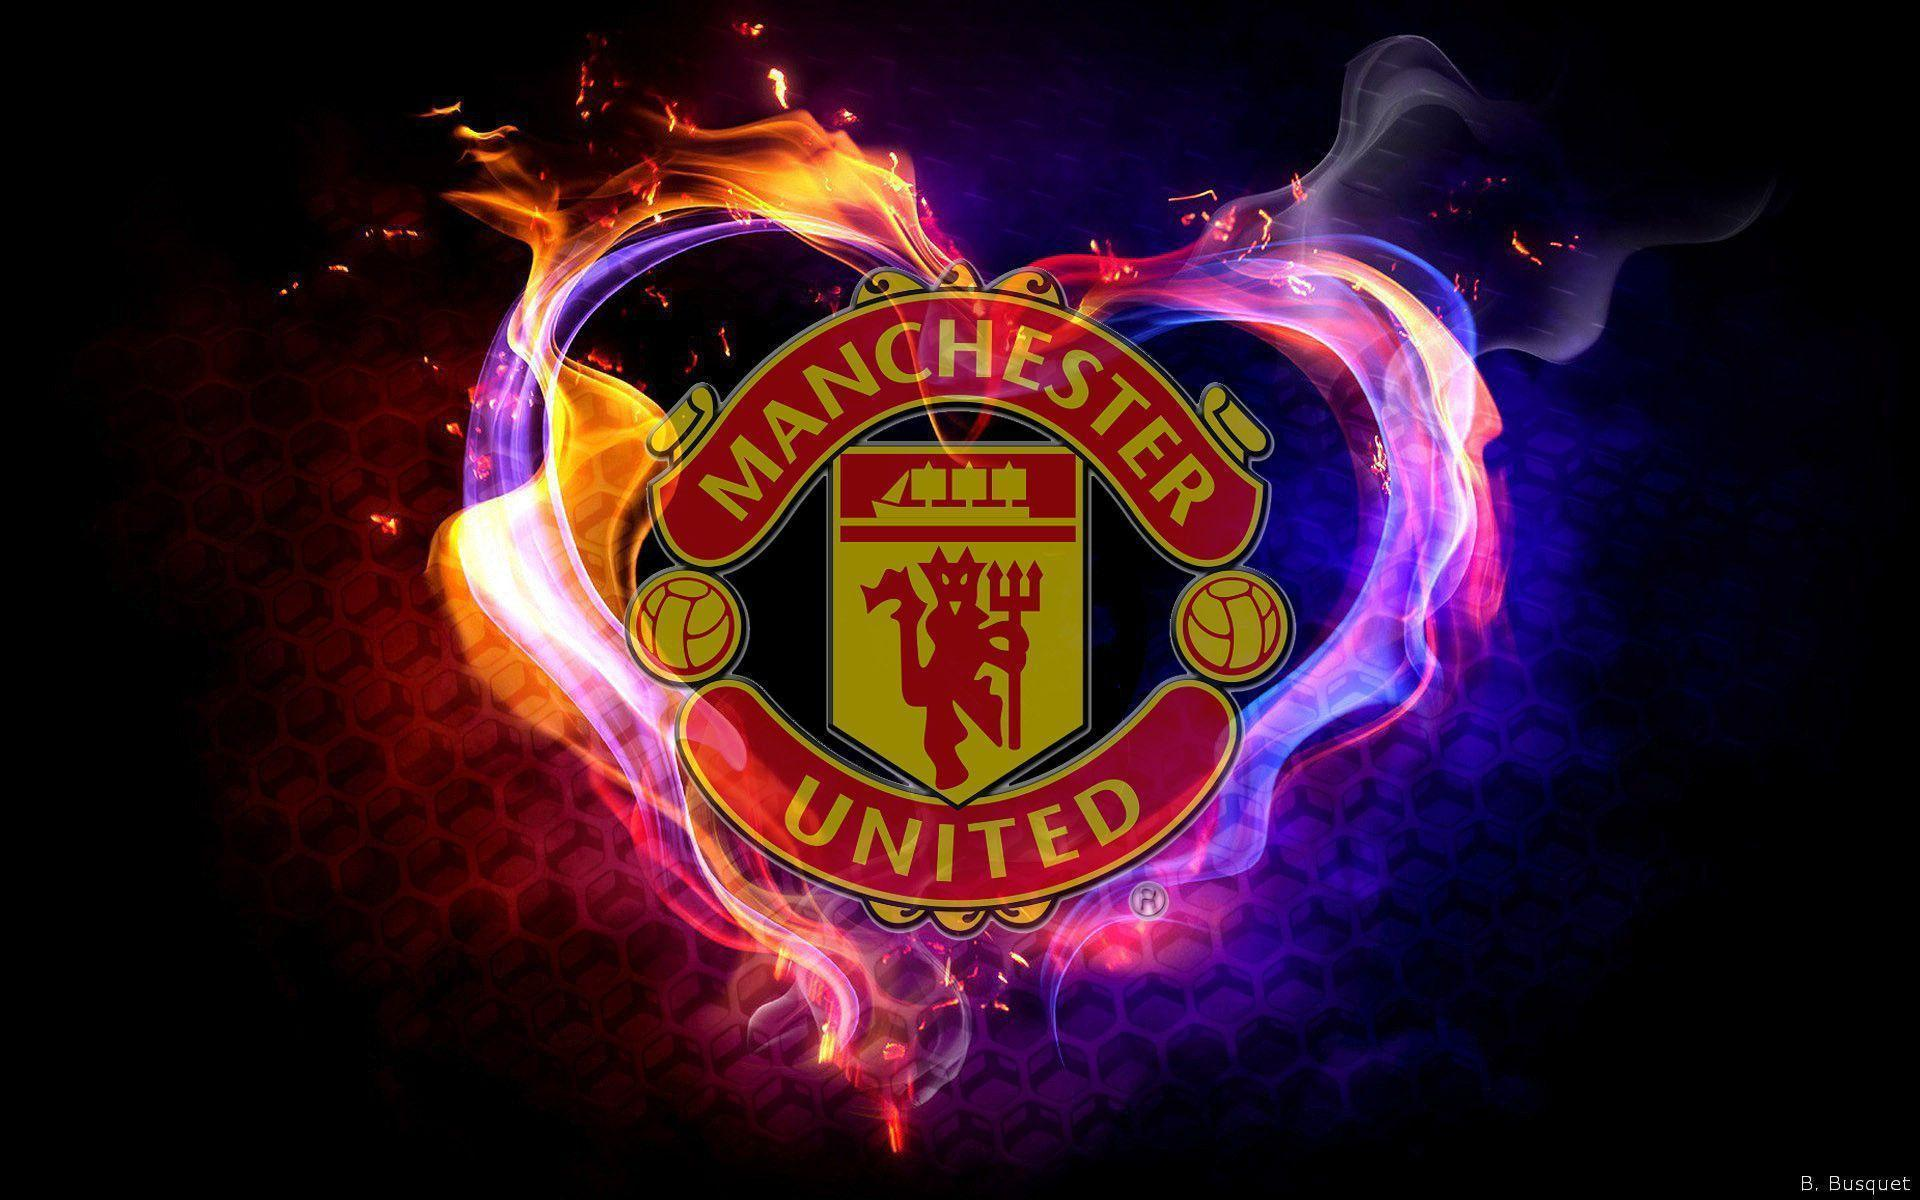 Manchester United Wallpapers - Barbaras HD Wallpapers